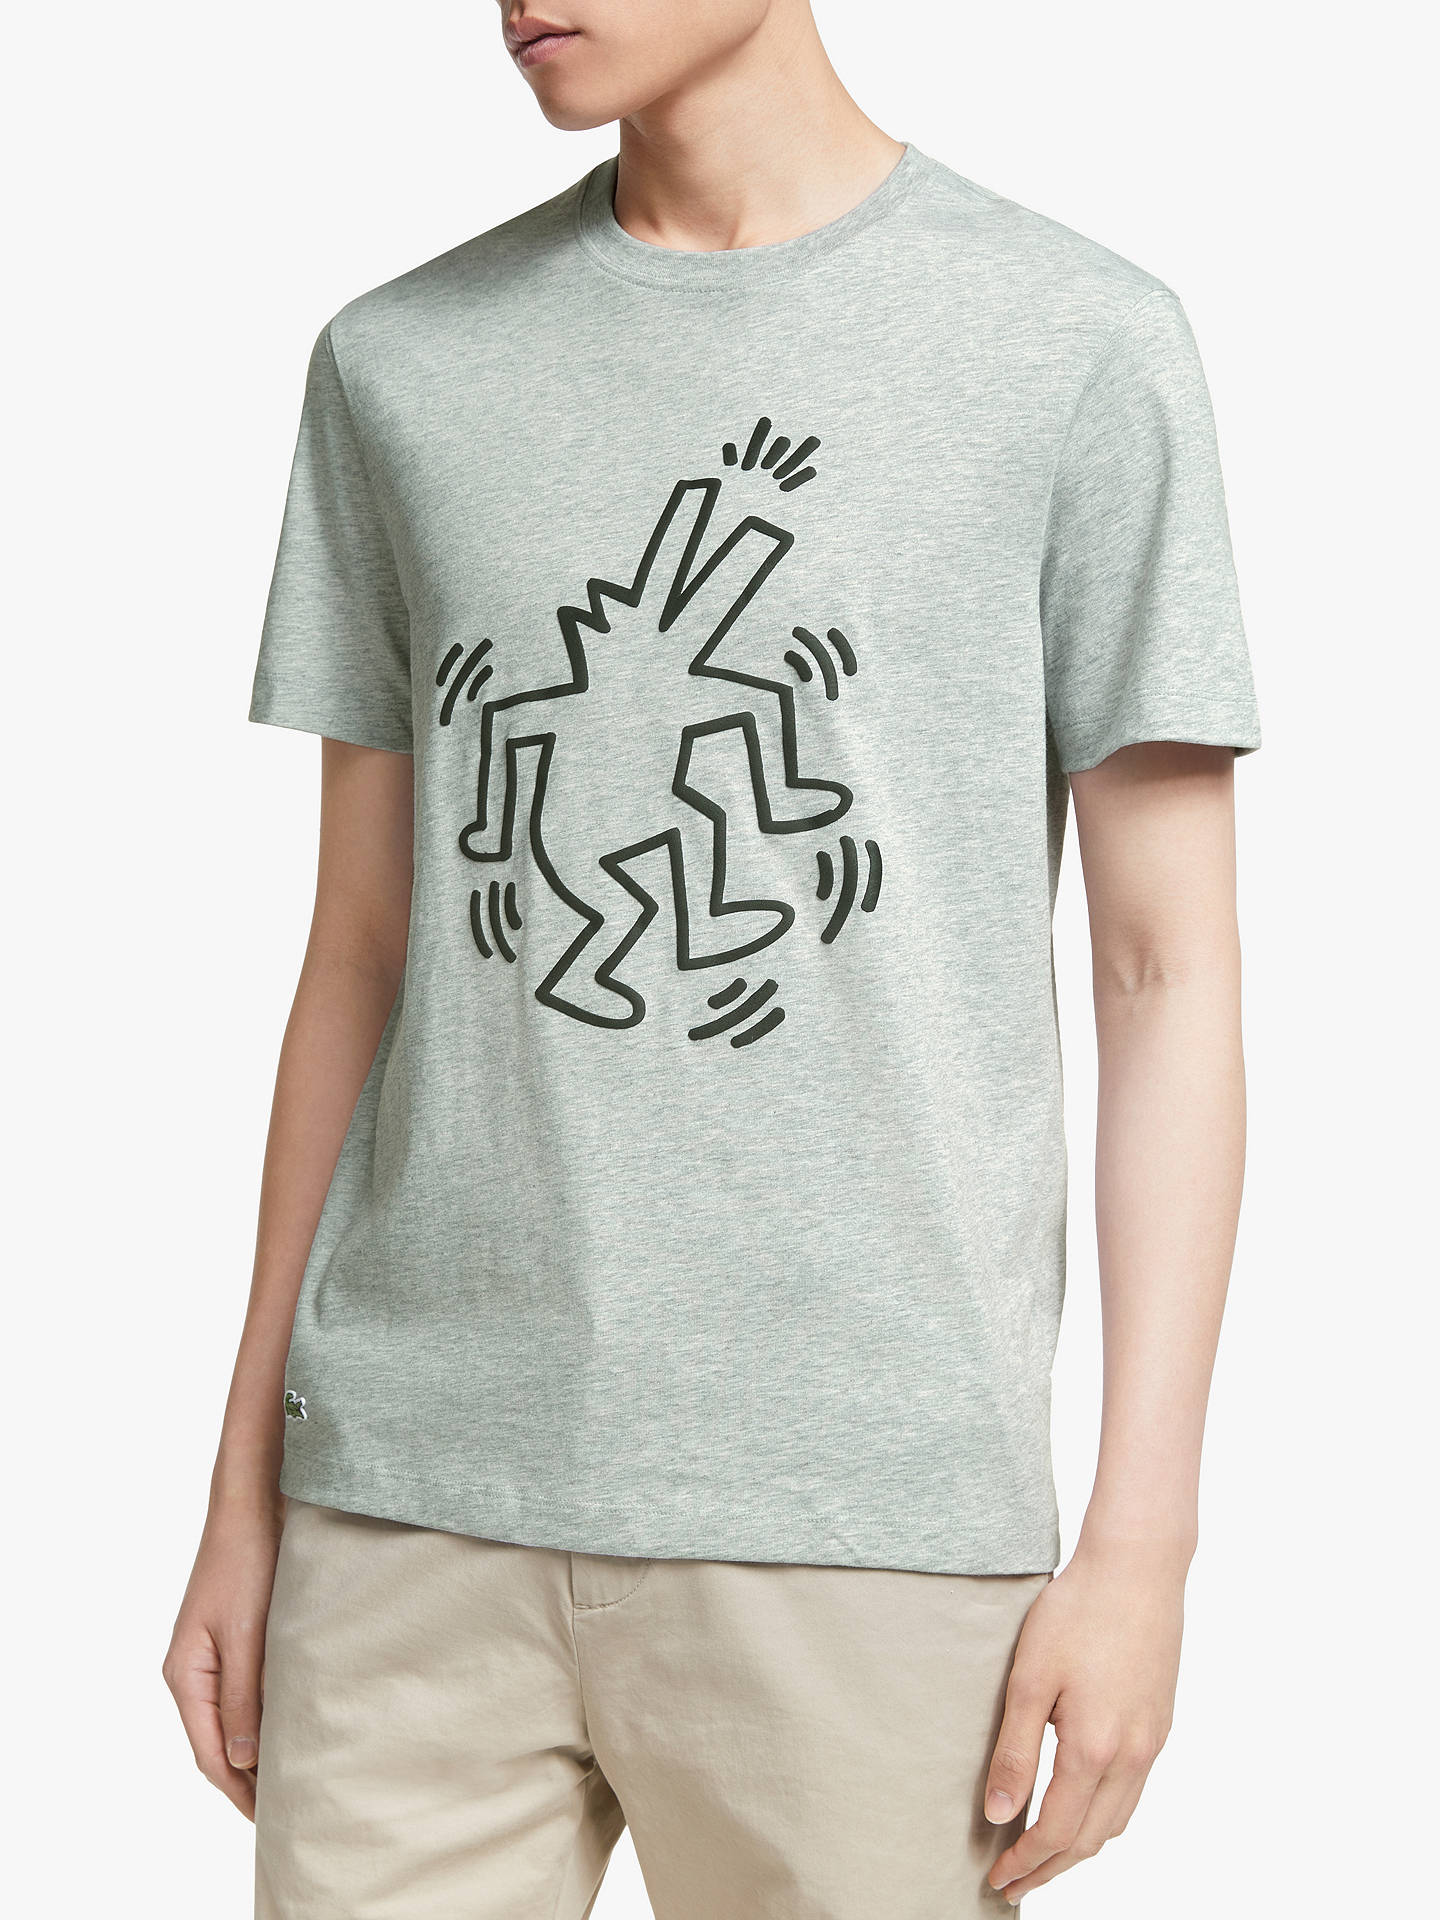 lacoste x keith haring graphic t shirt at john lewis. Black Bedroom Furniture Sets. Home Design Ideas